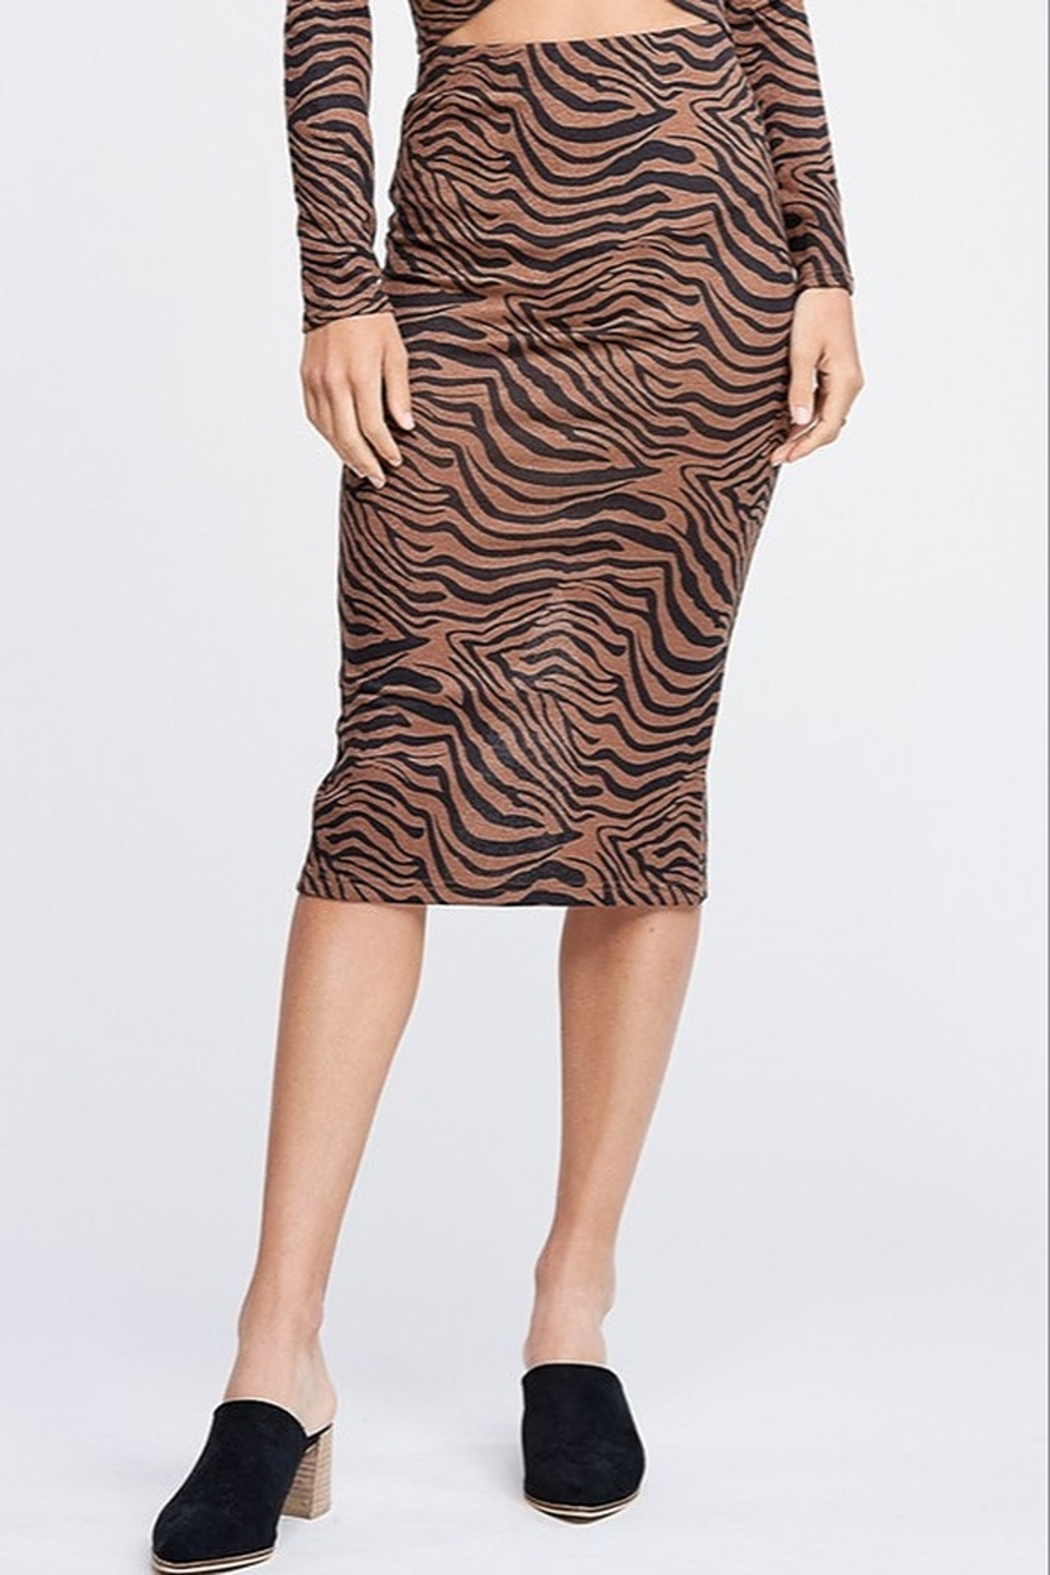 Emory Park Tiger Print Midi Skirt - Front Cropped Image